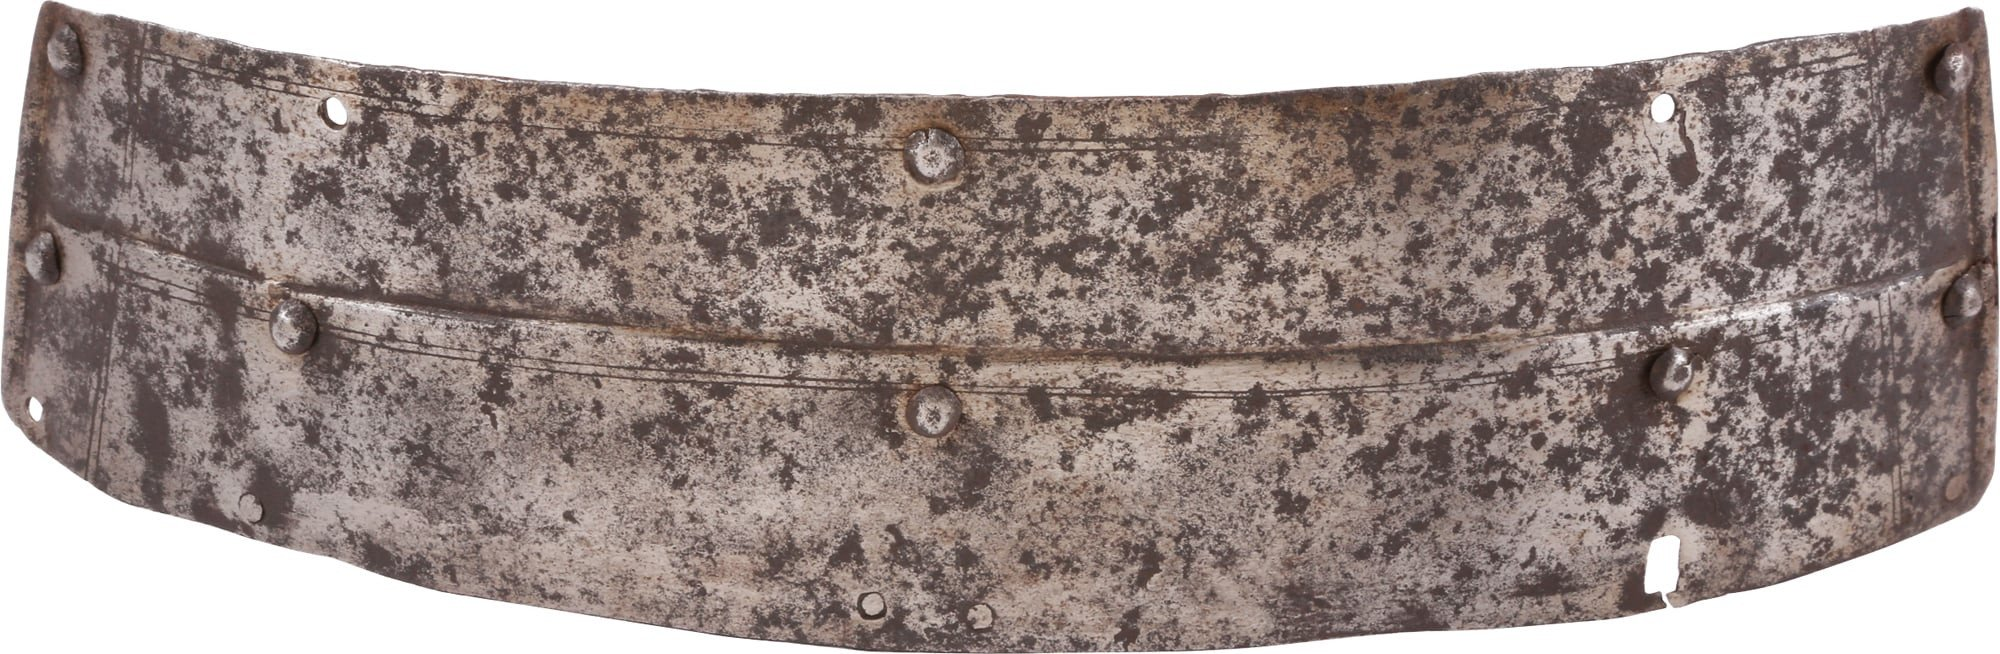 European Pikemans Tasset Plate C.1620 - Product